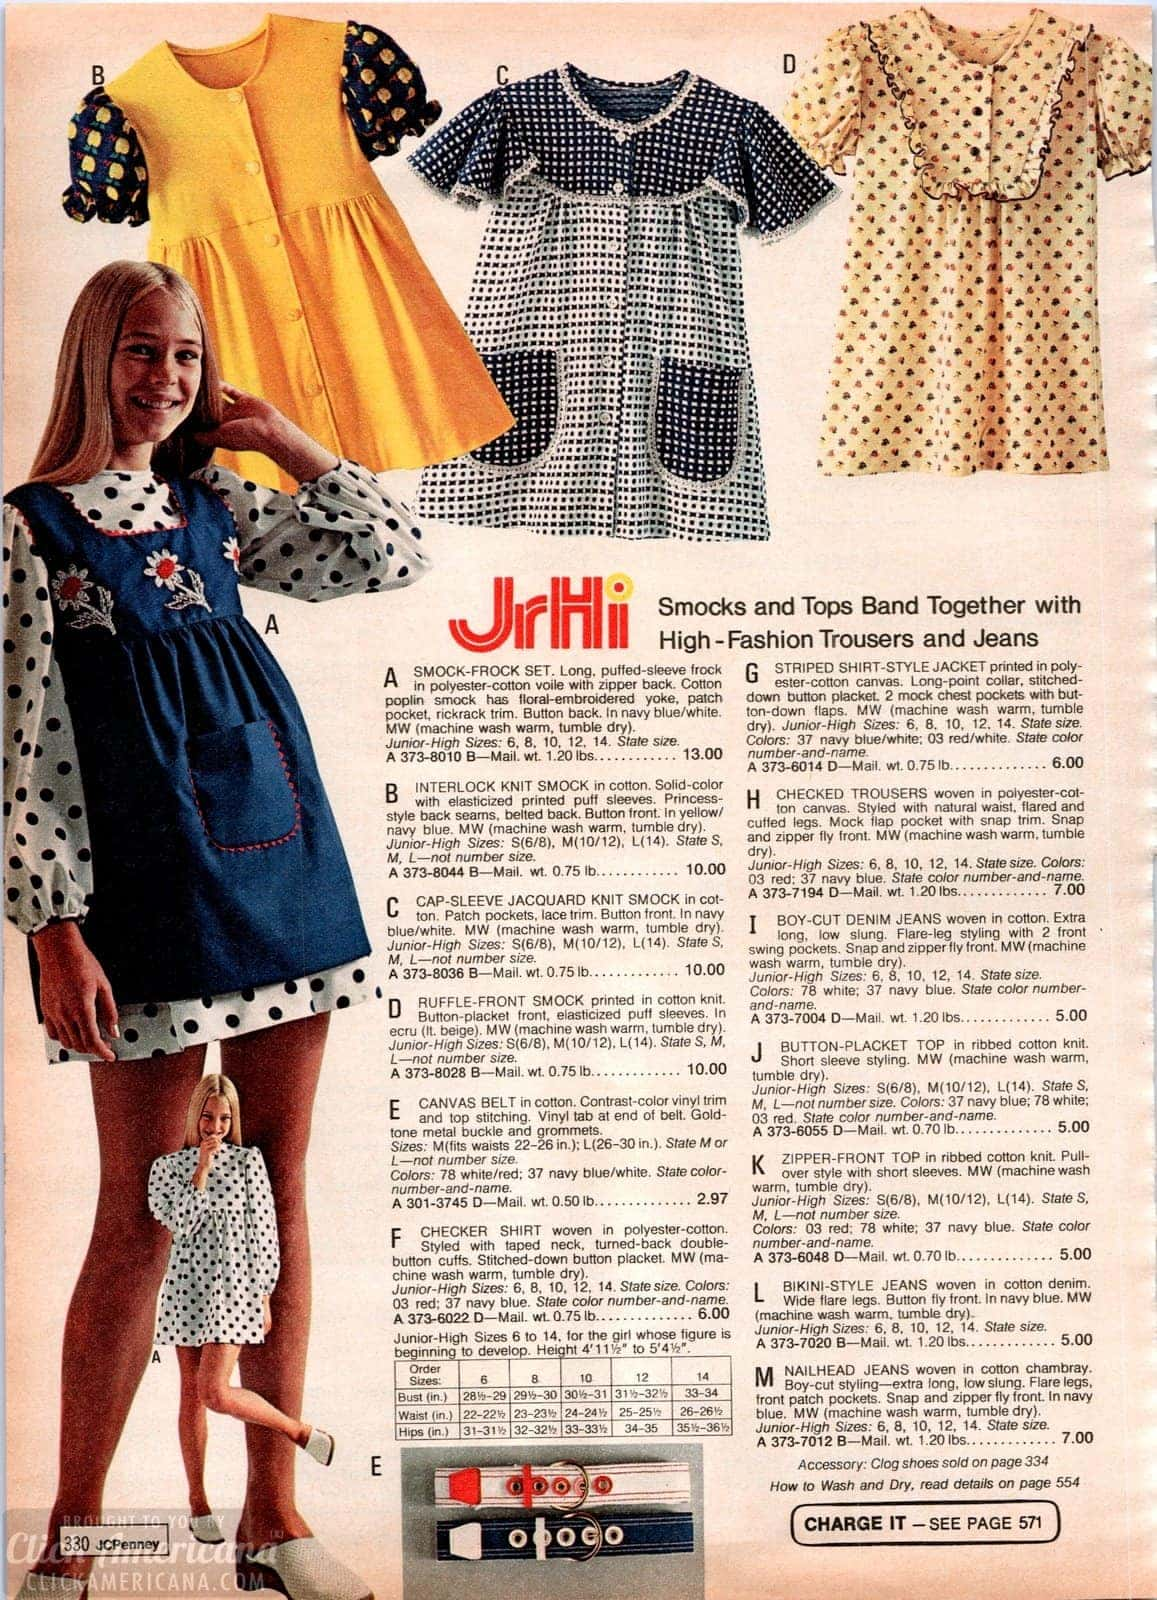 Retro JrHi smocks and tops plus high-fashion trousers and jeans for teen girls in 1973